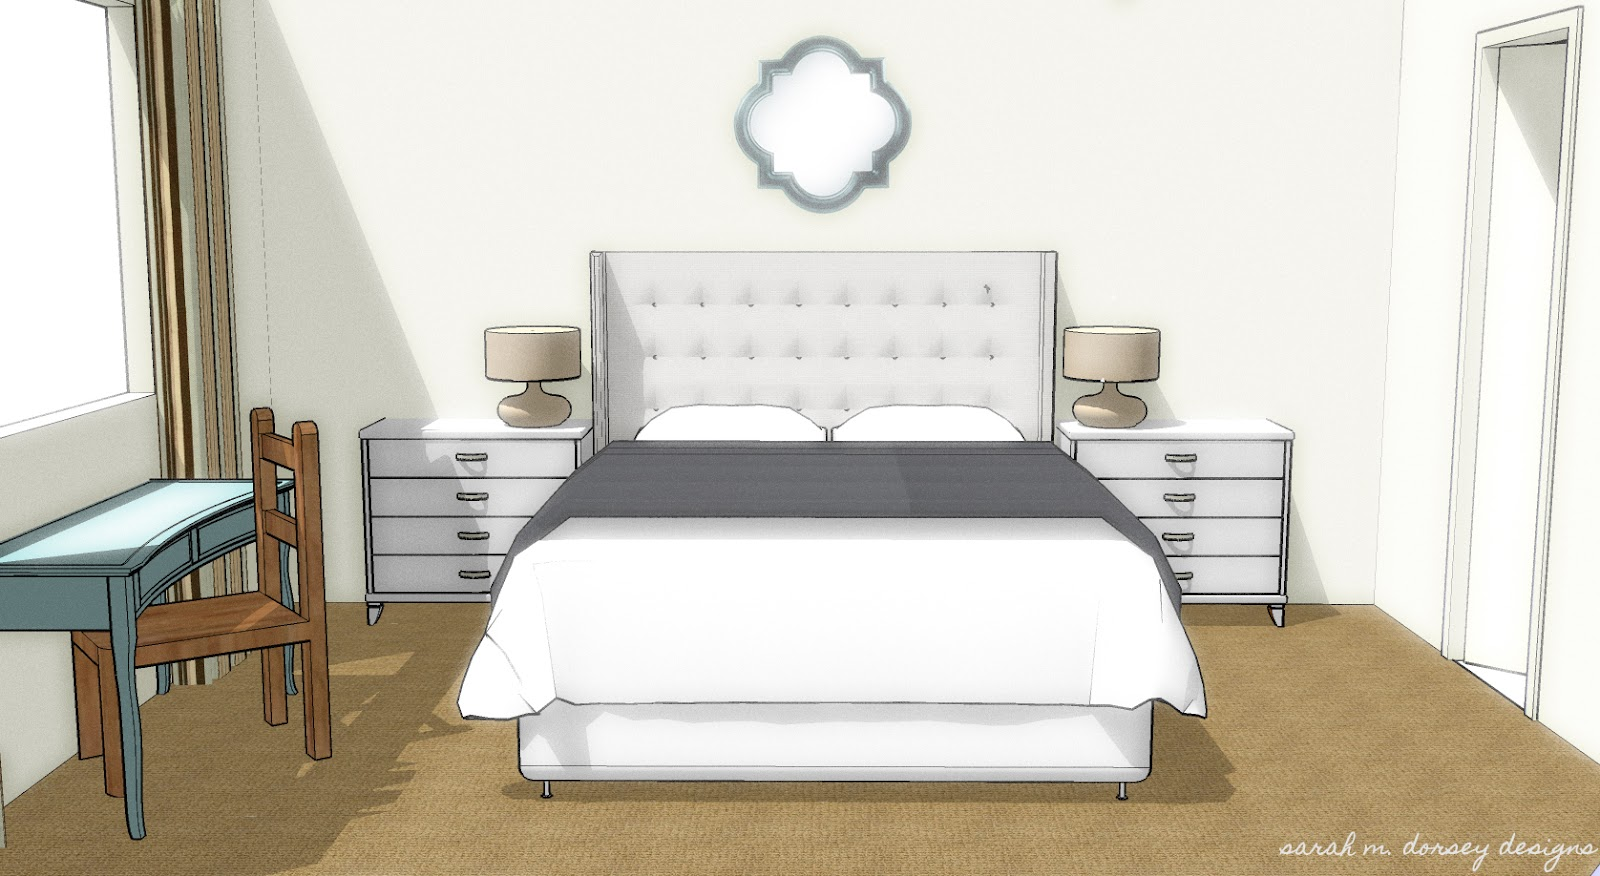 Sarah m dorsey designs mbr ideas with sketchup and photoshop for Mirror in sketchup